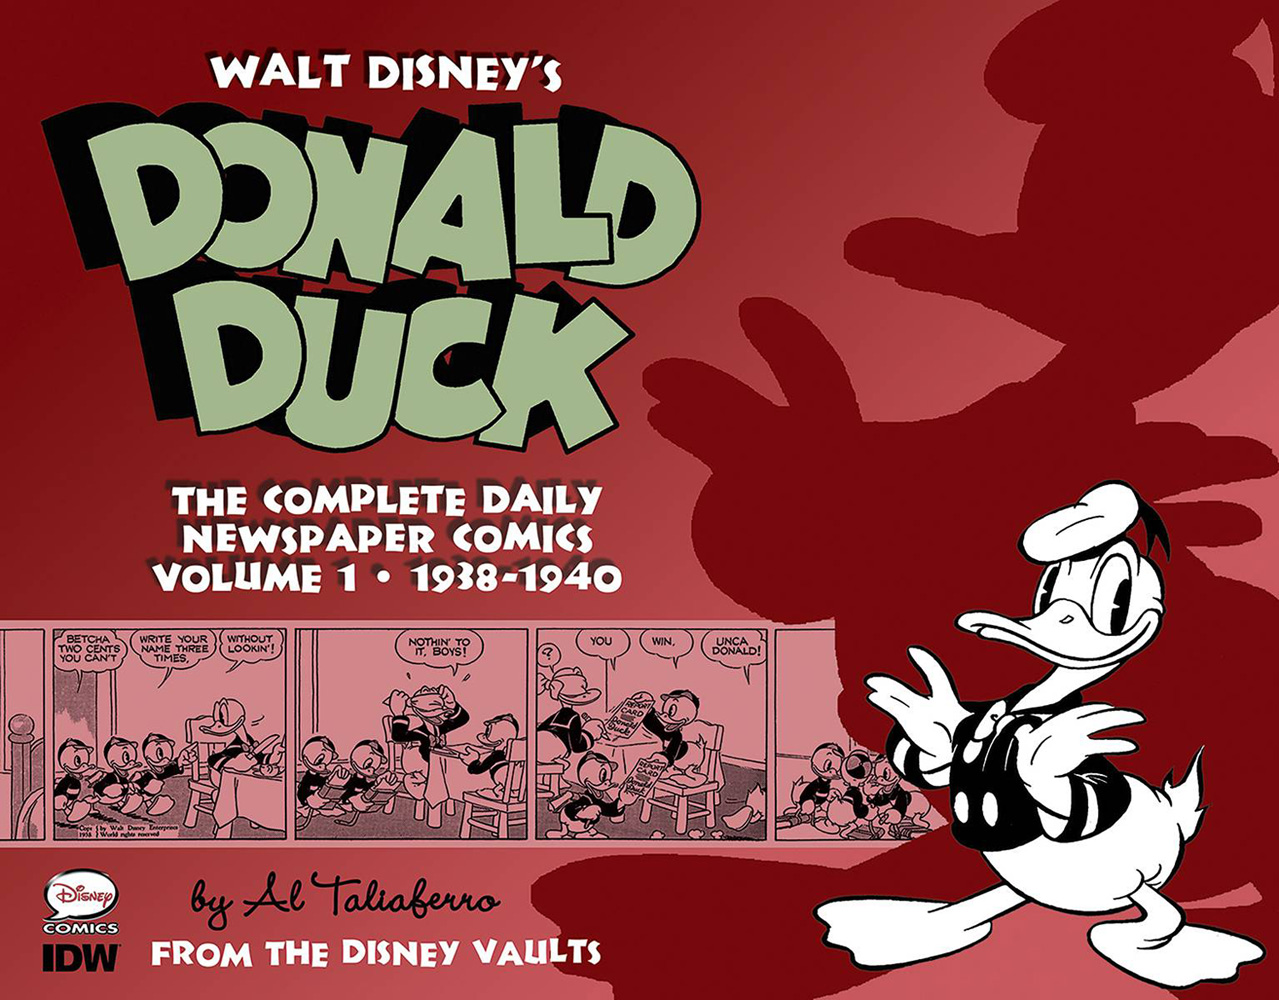 Walt Disney's Donald Duck: The Complete Daily Newspaper Comics Volume 1